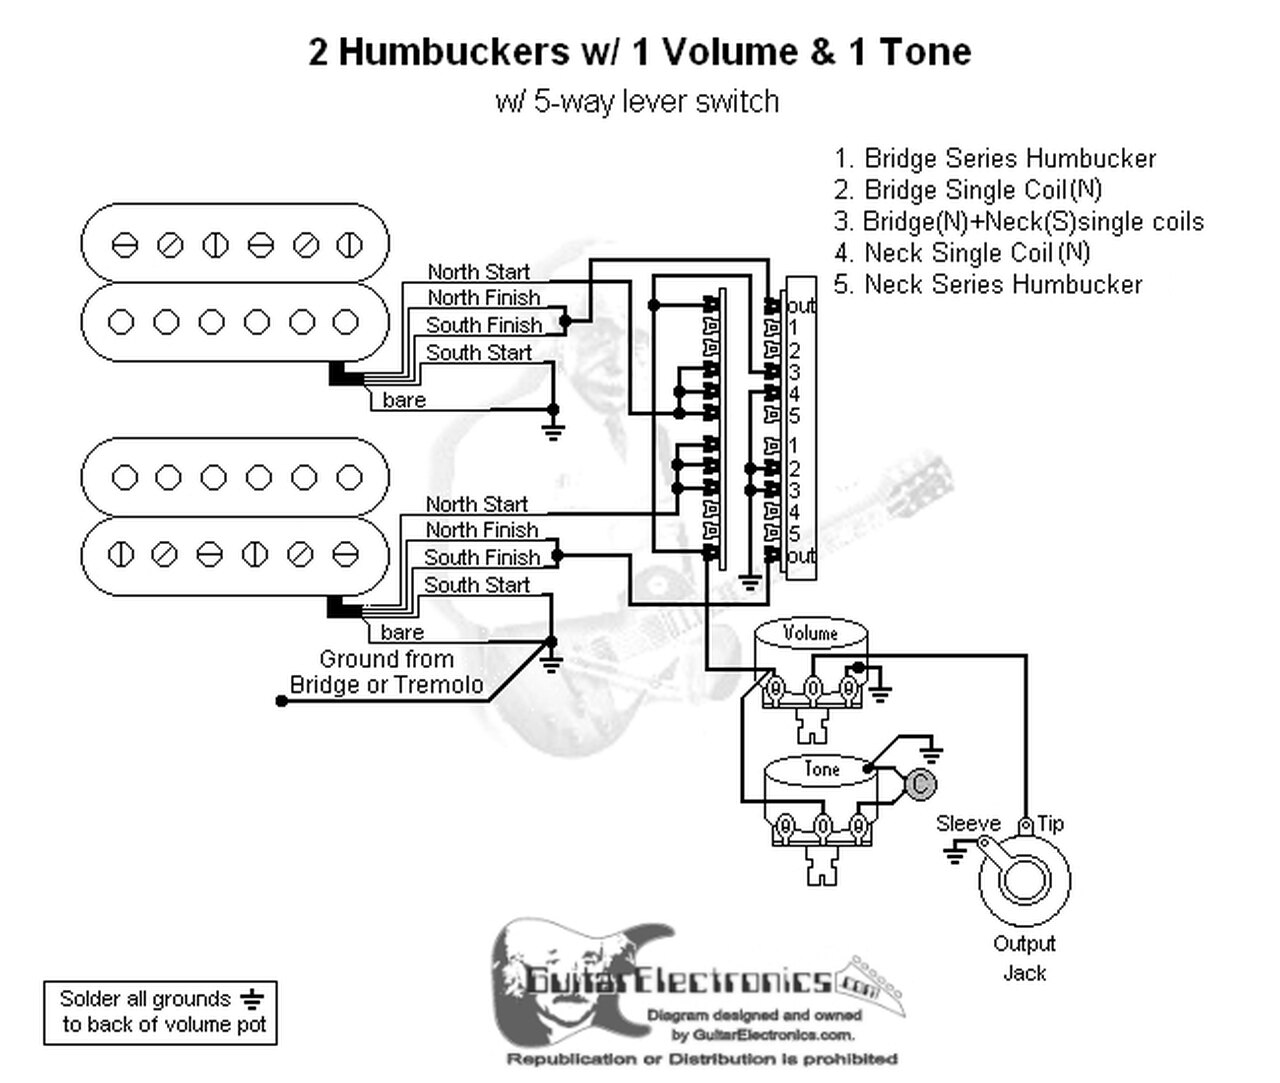 Tg 9433 2 Humbucker 1 Single Coil Wiring Diagrams Download Diagram